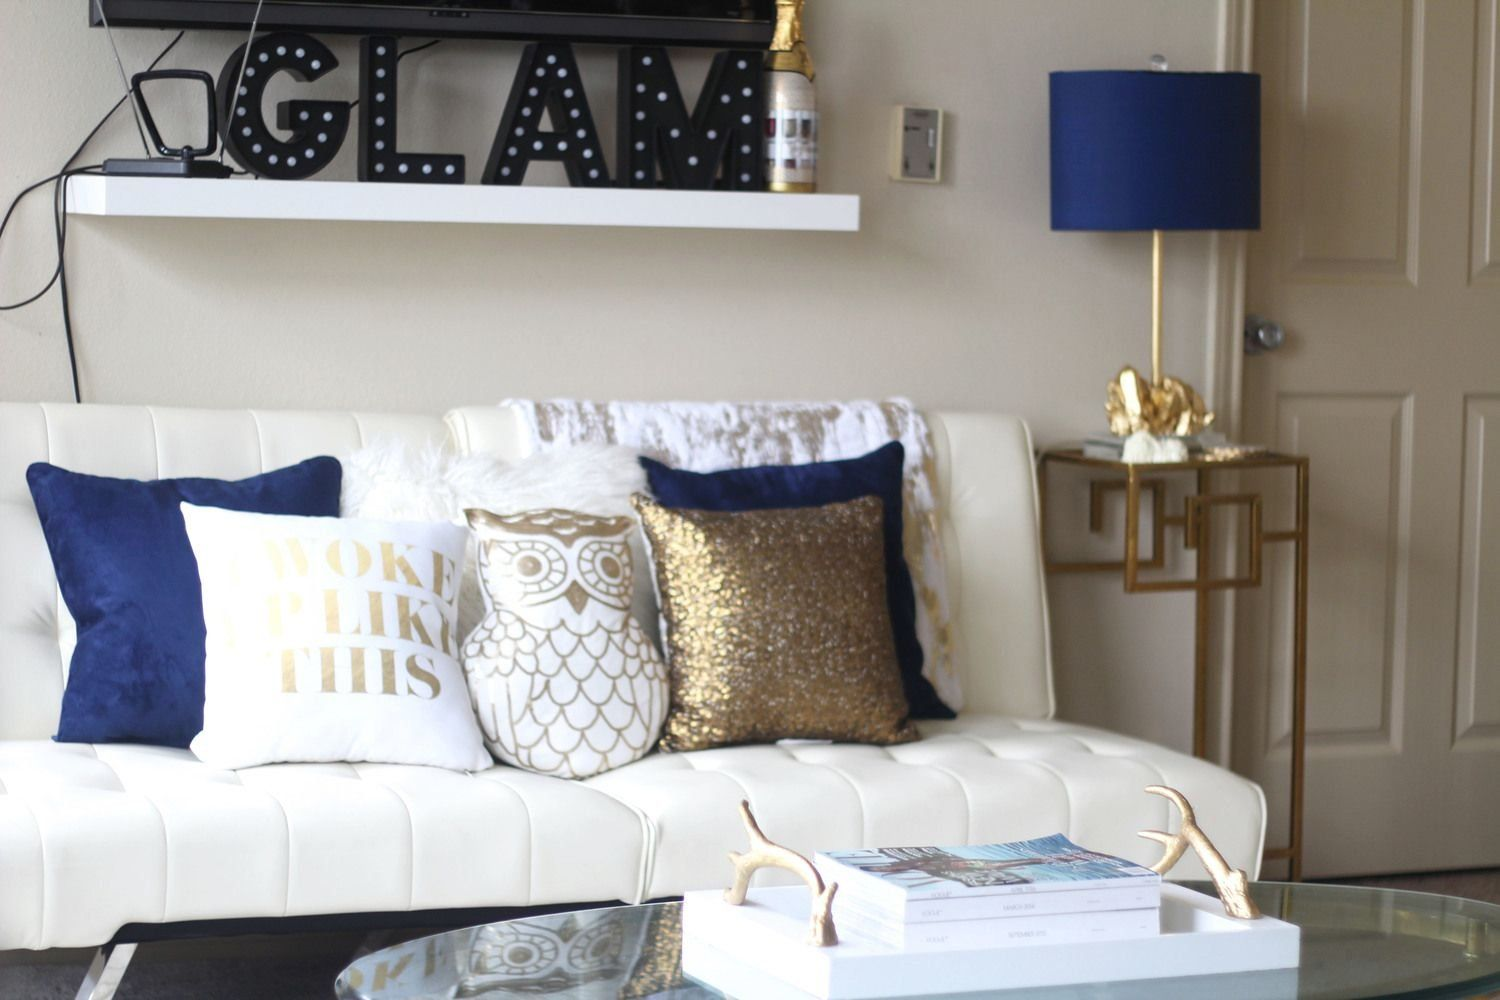 6 Easy Ways To Update Accent Decor Royal Blue Gold 1004 In 2020 Blue Living Room Decor Gold Living Room Blue And Gold Bedroom #royal #blue #living #room #decorating #ideas